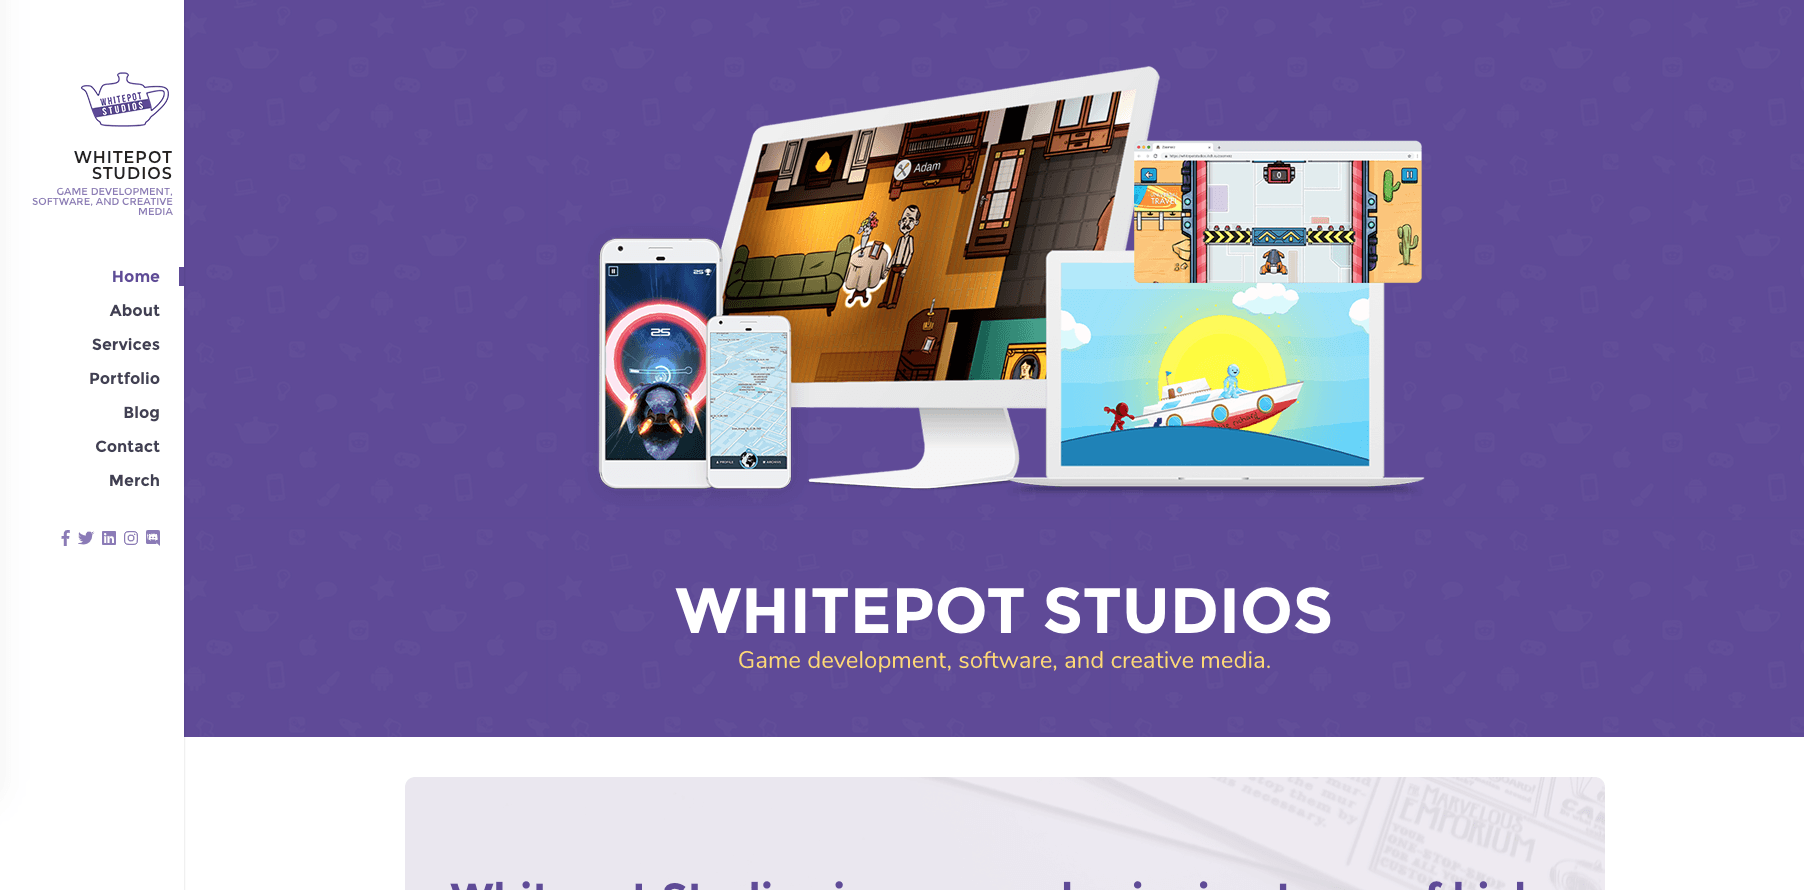 Whitepot Studios - Portfolio image showing our game development, software development, and creative media work for PC, Console, Web, and Mobile